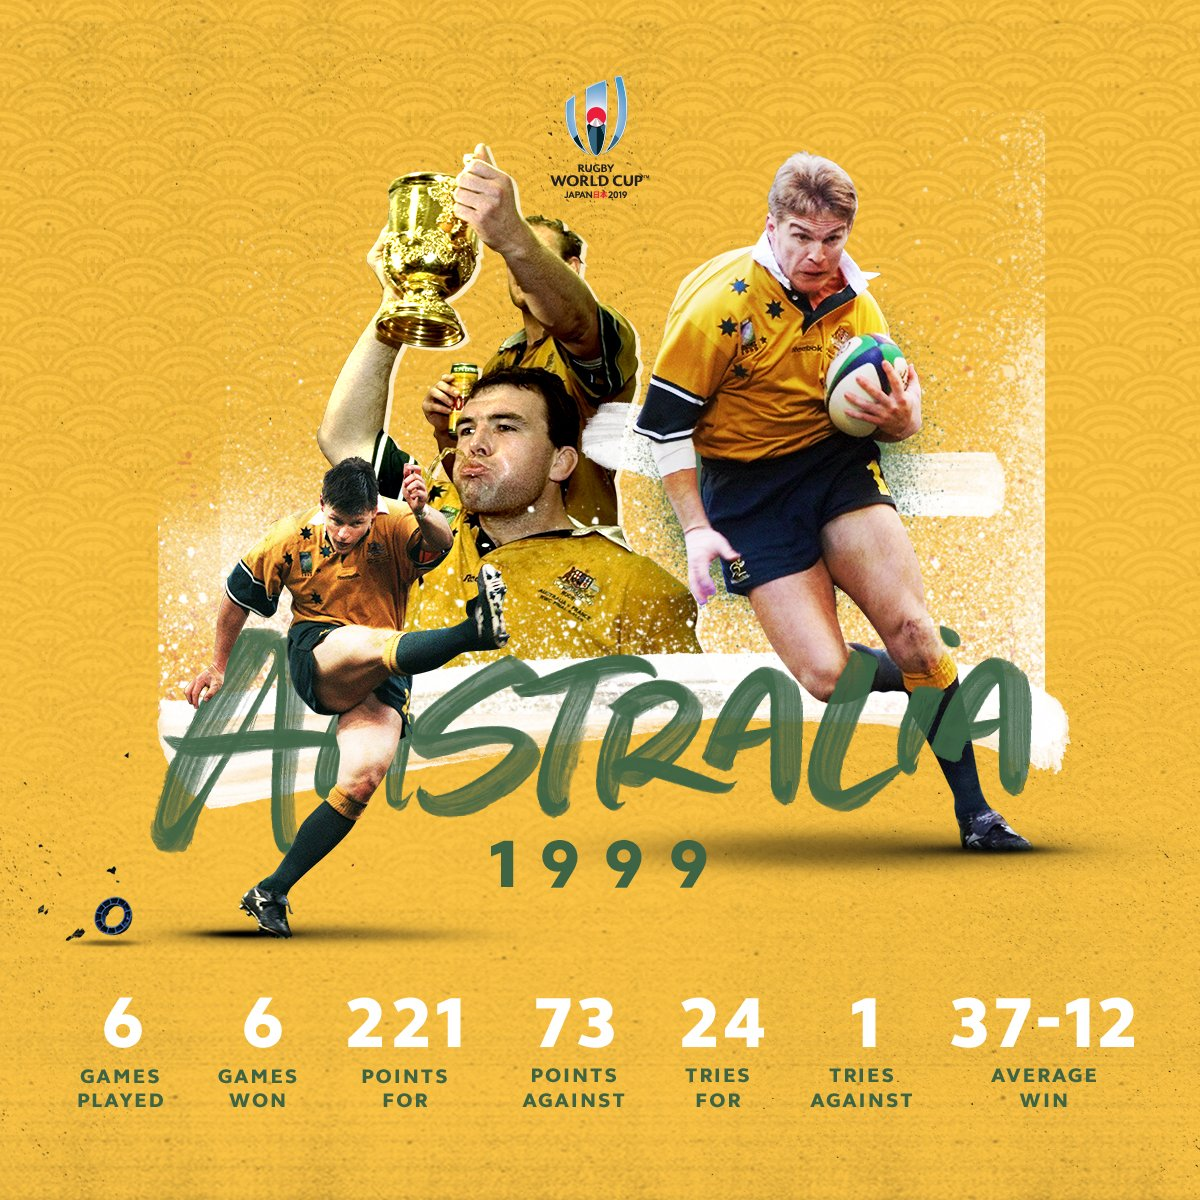 test Twitter Media - Only one try against them.   @wallabies were a force at #RWC1999 to claim their second #WebbEllisCup https://t.co/cMUFvTF80v